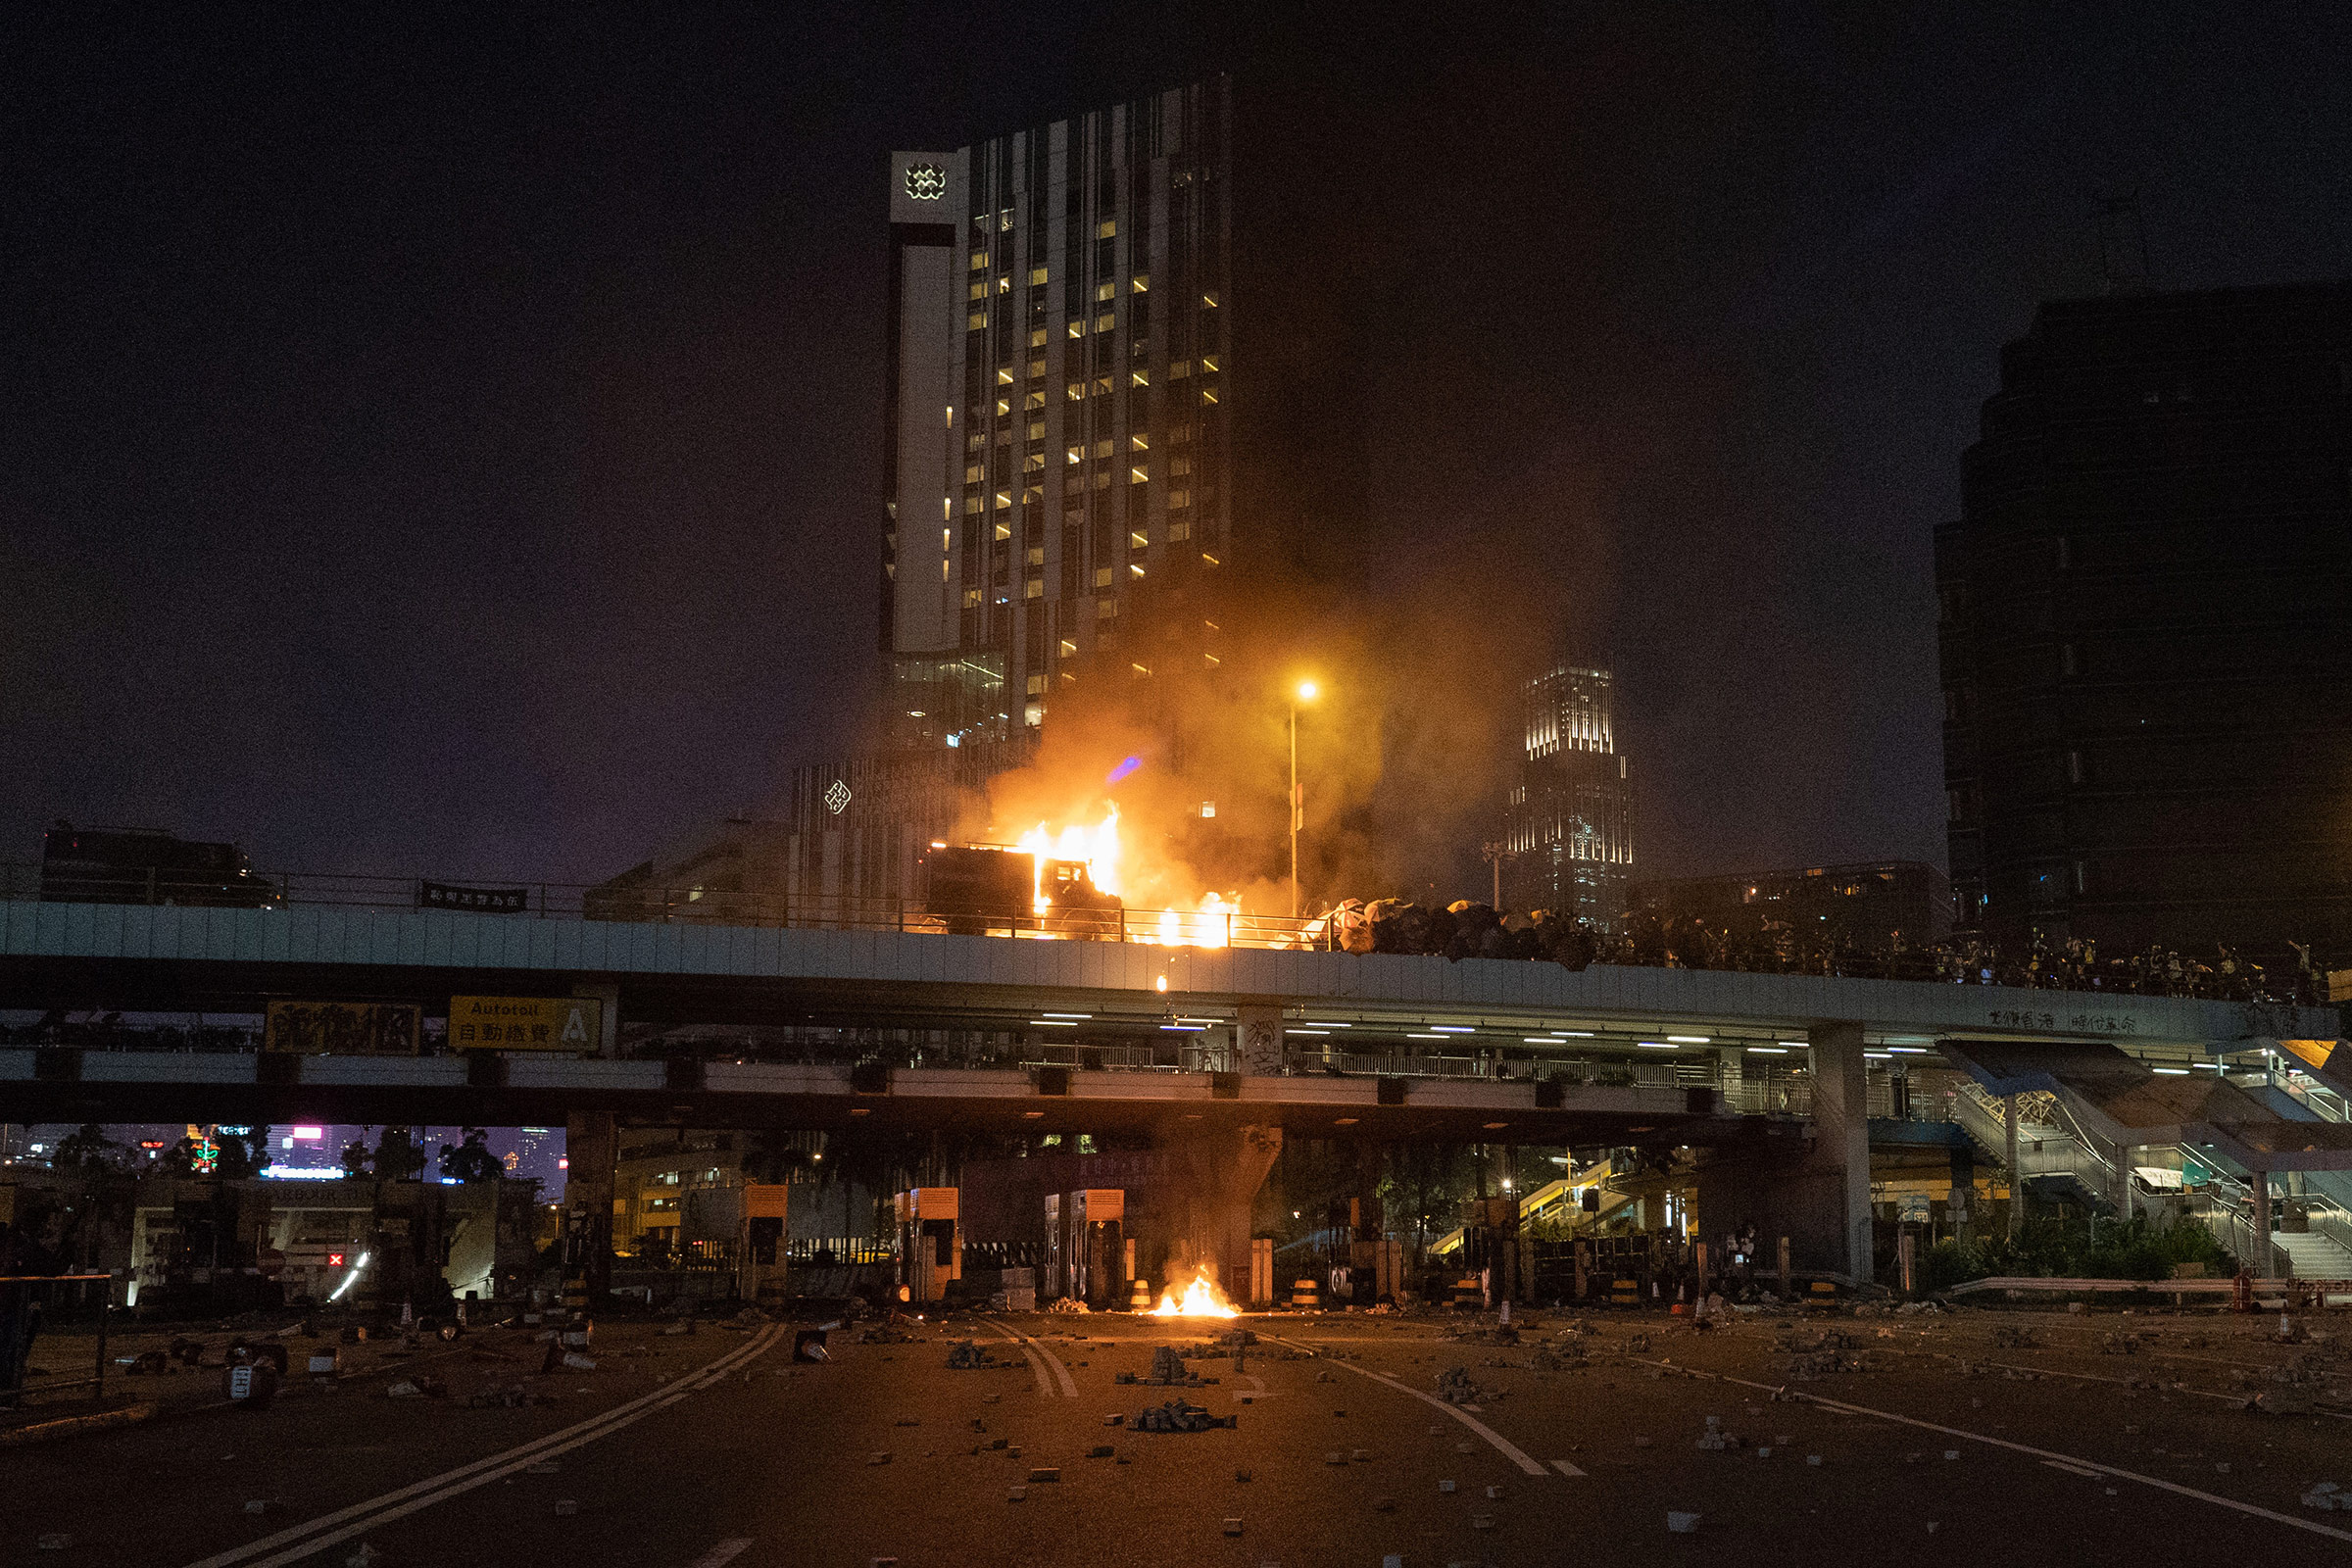 An armored police van is engulfed in flames  on a bridge overlooking the Cross-Harbour Tunnel, Nov. 17, 2019.